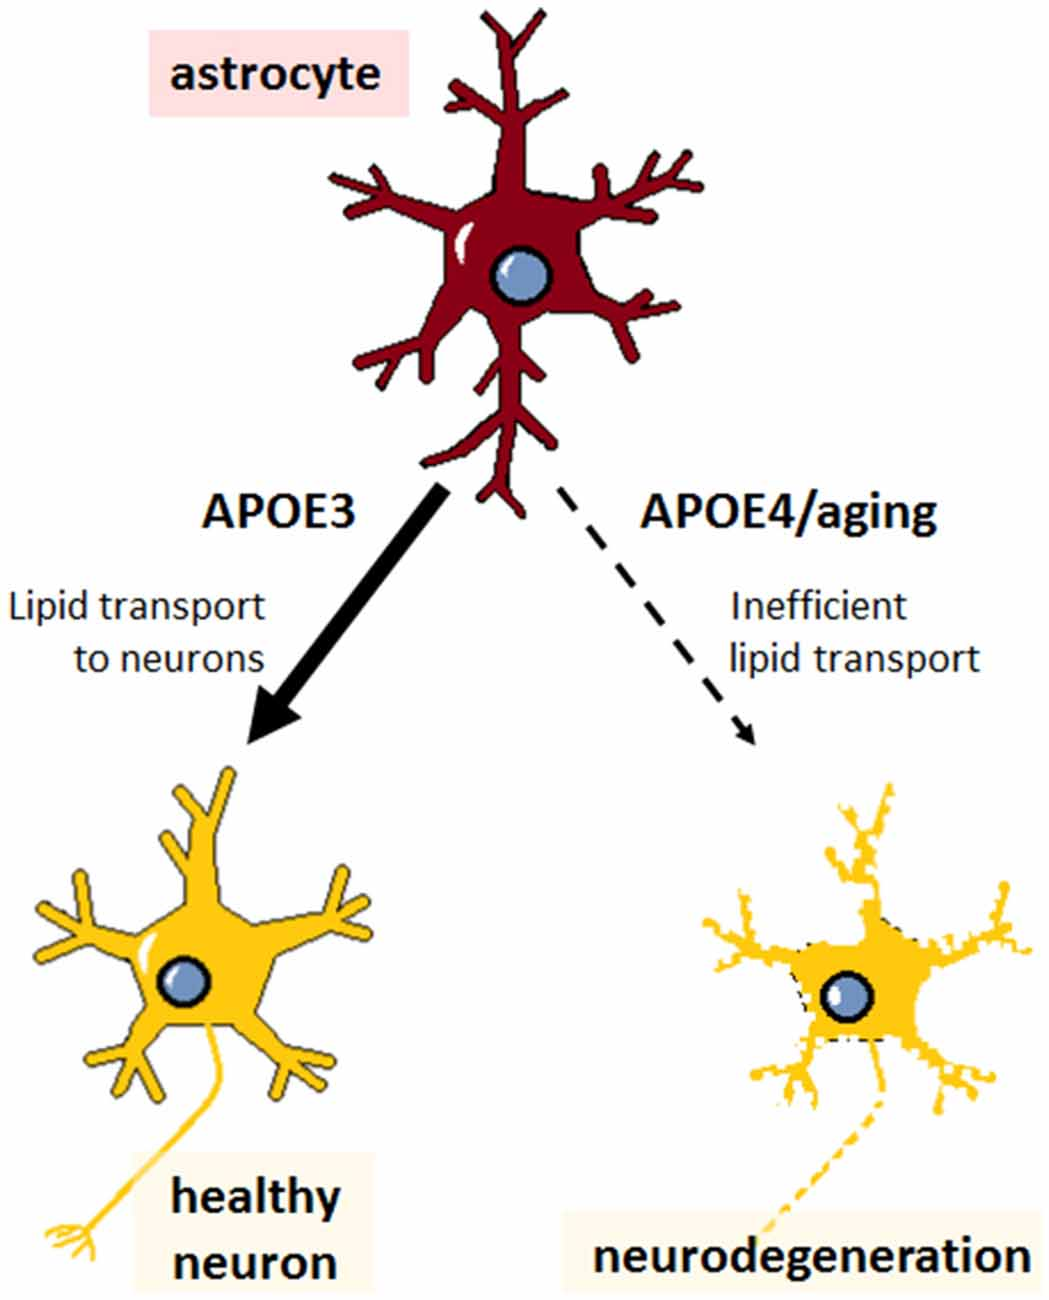 Frontiers | The Role of APOE4 in Disrupting the Homeostatic